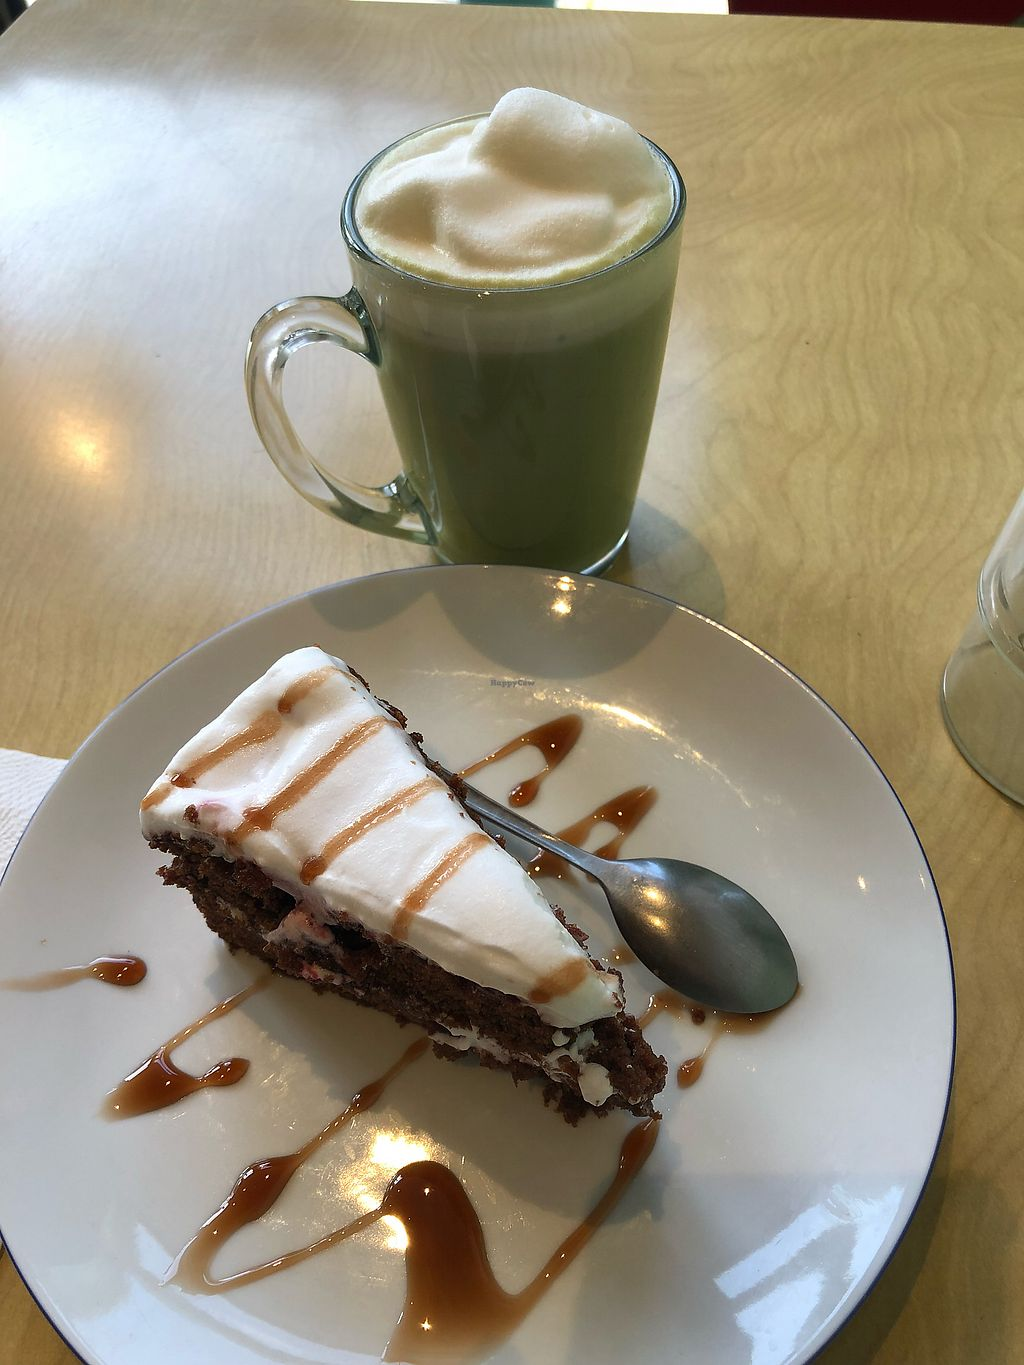 """Photo of Against the Grain  by <a href=""""/members/profile/_hael"""">_hael</a> <br/>Matcha w/ Soya & Cherry Cake Slice <br/> February 14, 2018  - <a href='/contact/abuse/image/66470/359402'>Report</a>"""